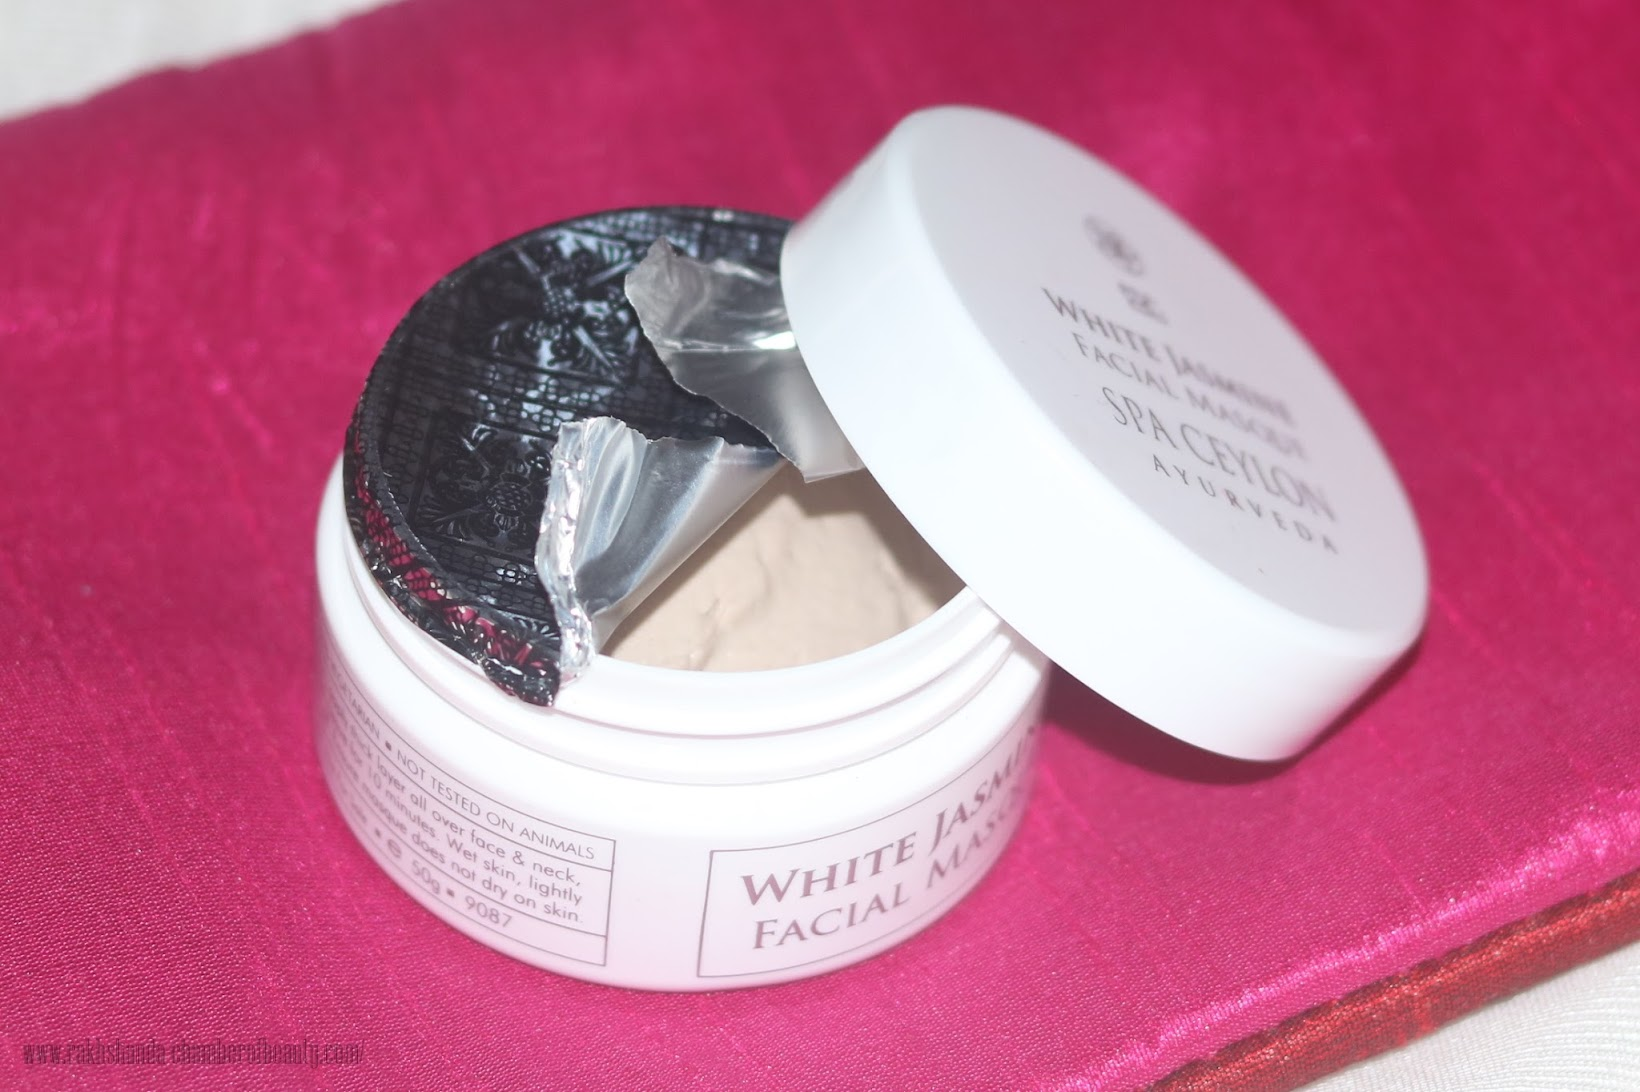 Fab Bag October 2015- review, swatches & photos, Spa Ceylon White Jasmine Facial Mask, skincare, Indian beauty blogger, Chamber of Beauty